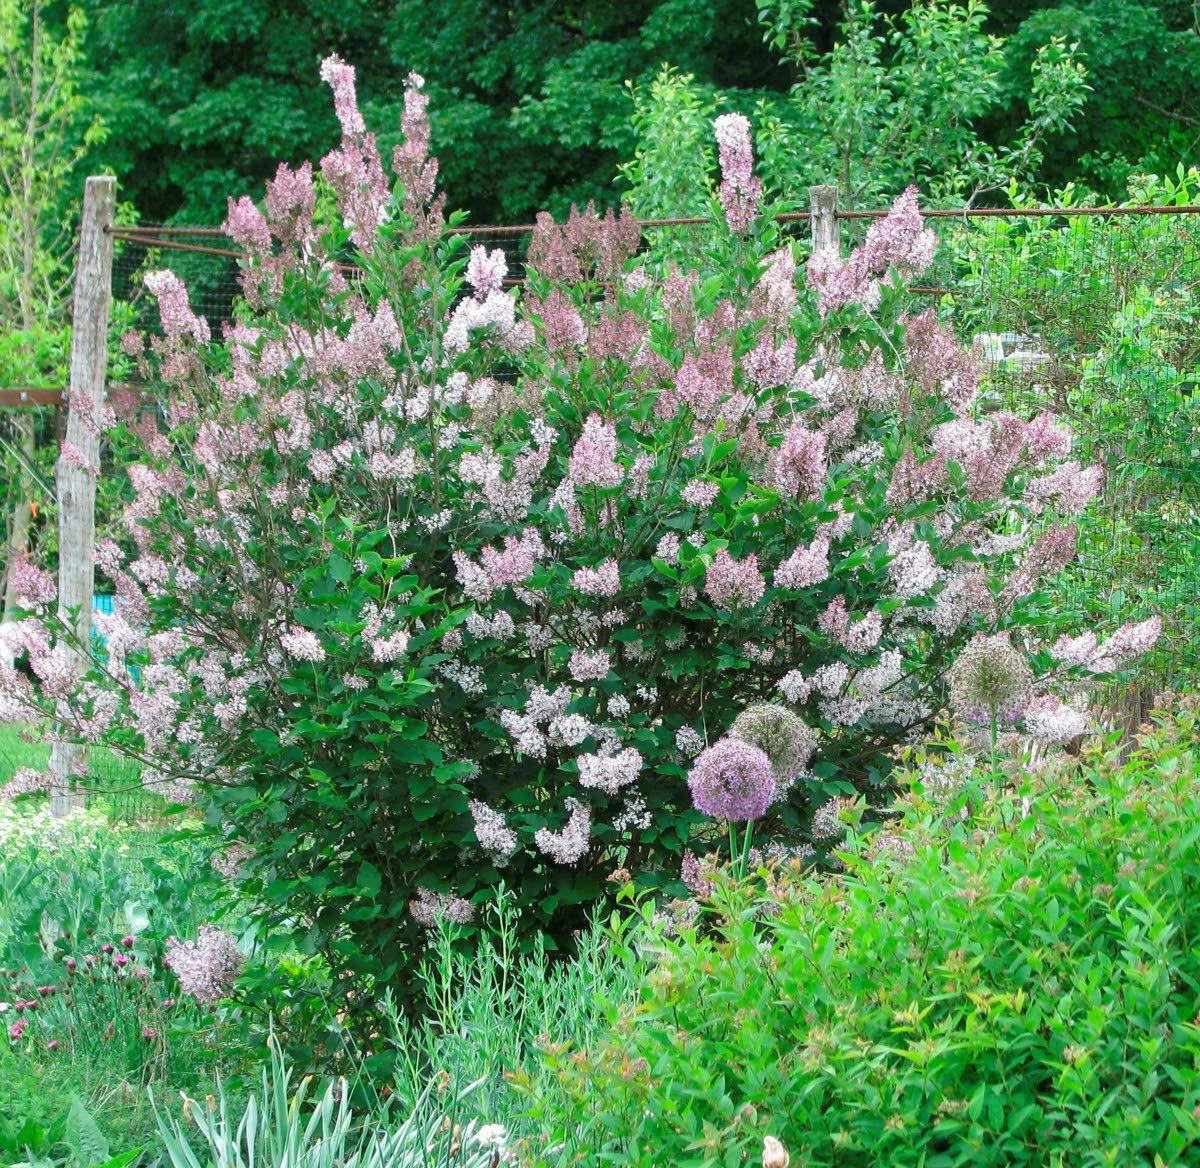 Give other lilac species a try